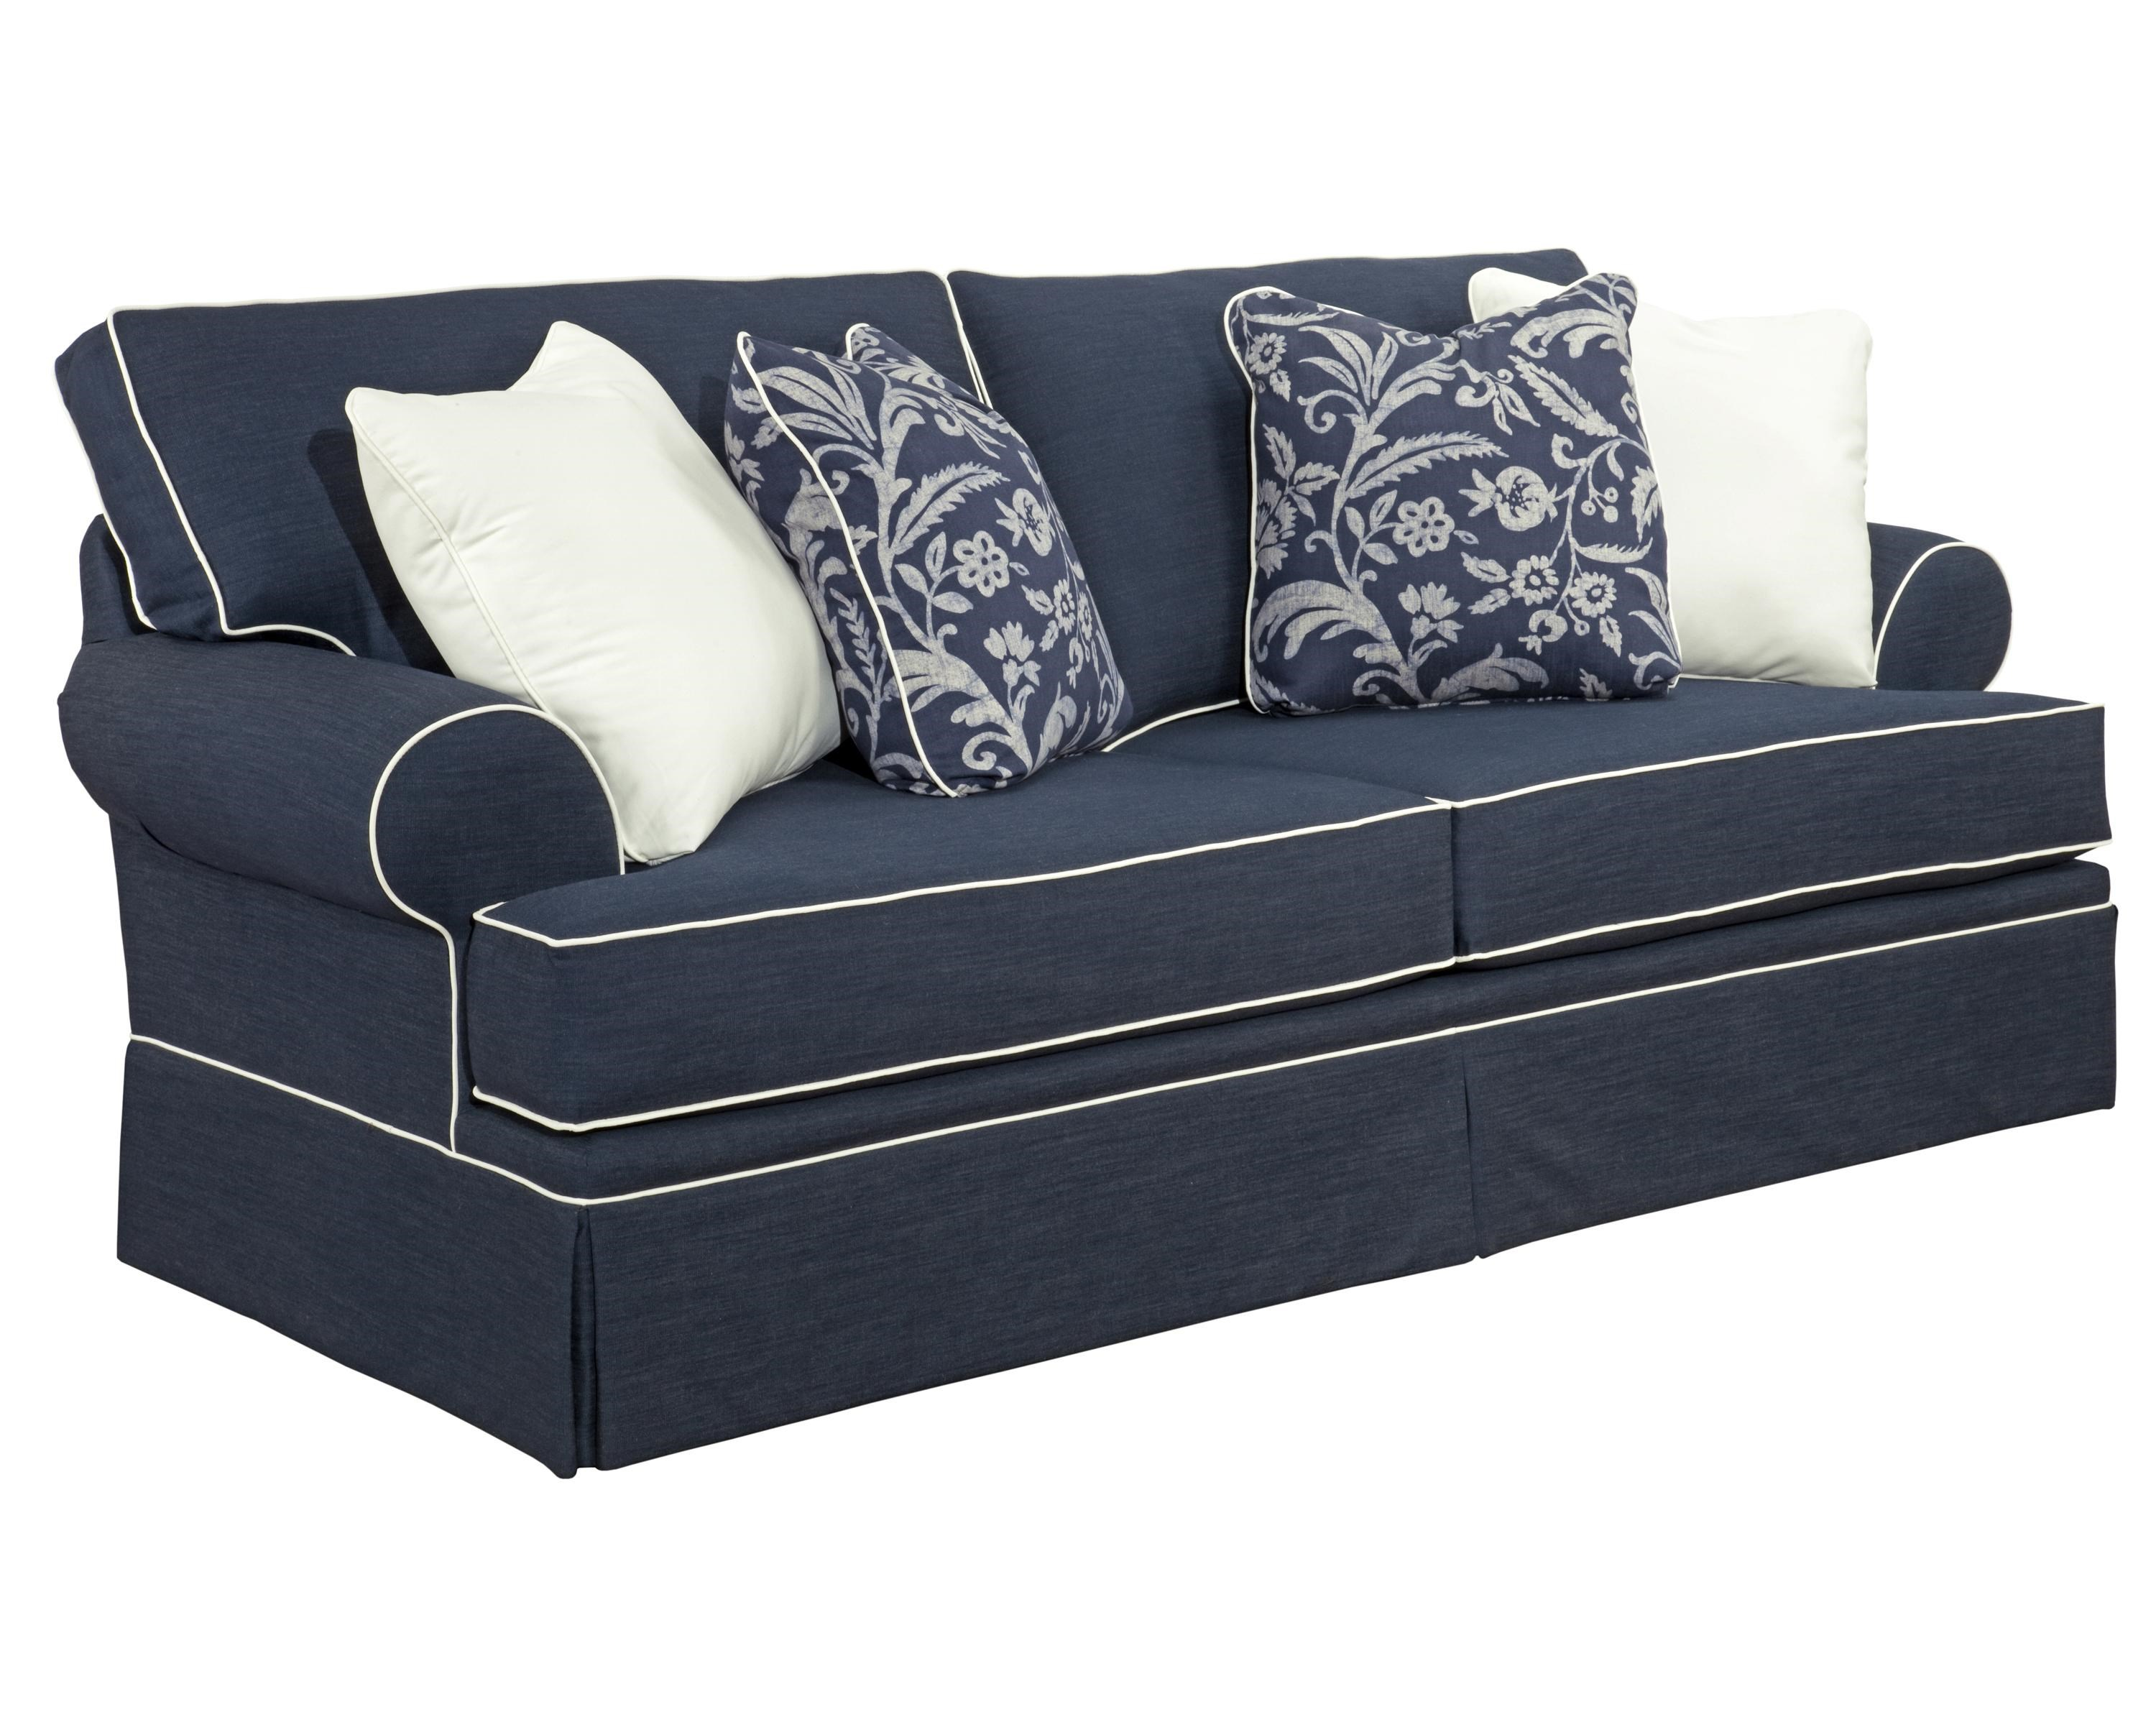 broyhill sleeper sofa andre high fashion home furniture emily queen irest westrich